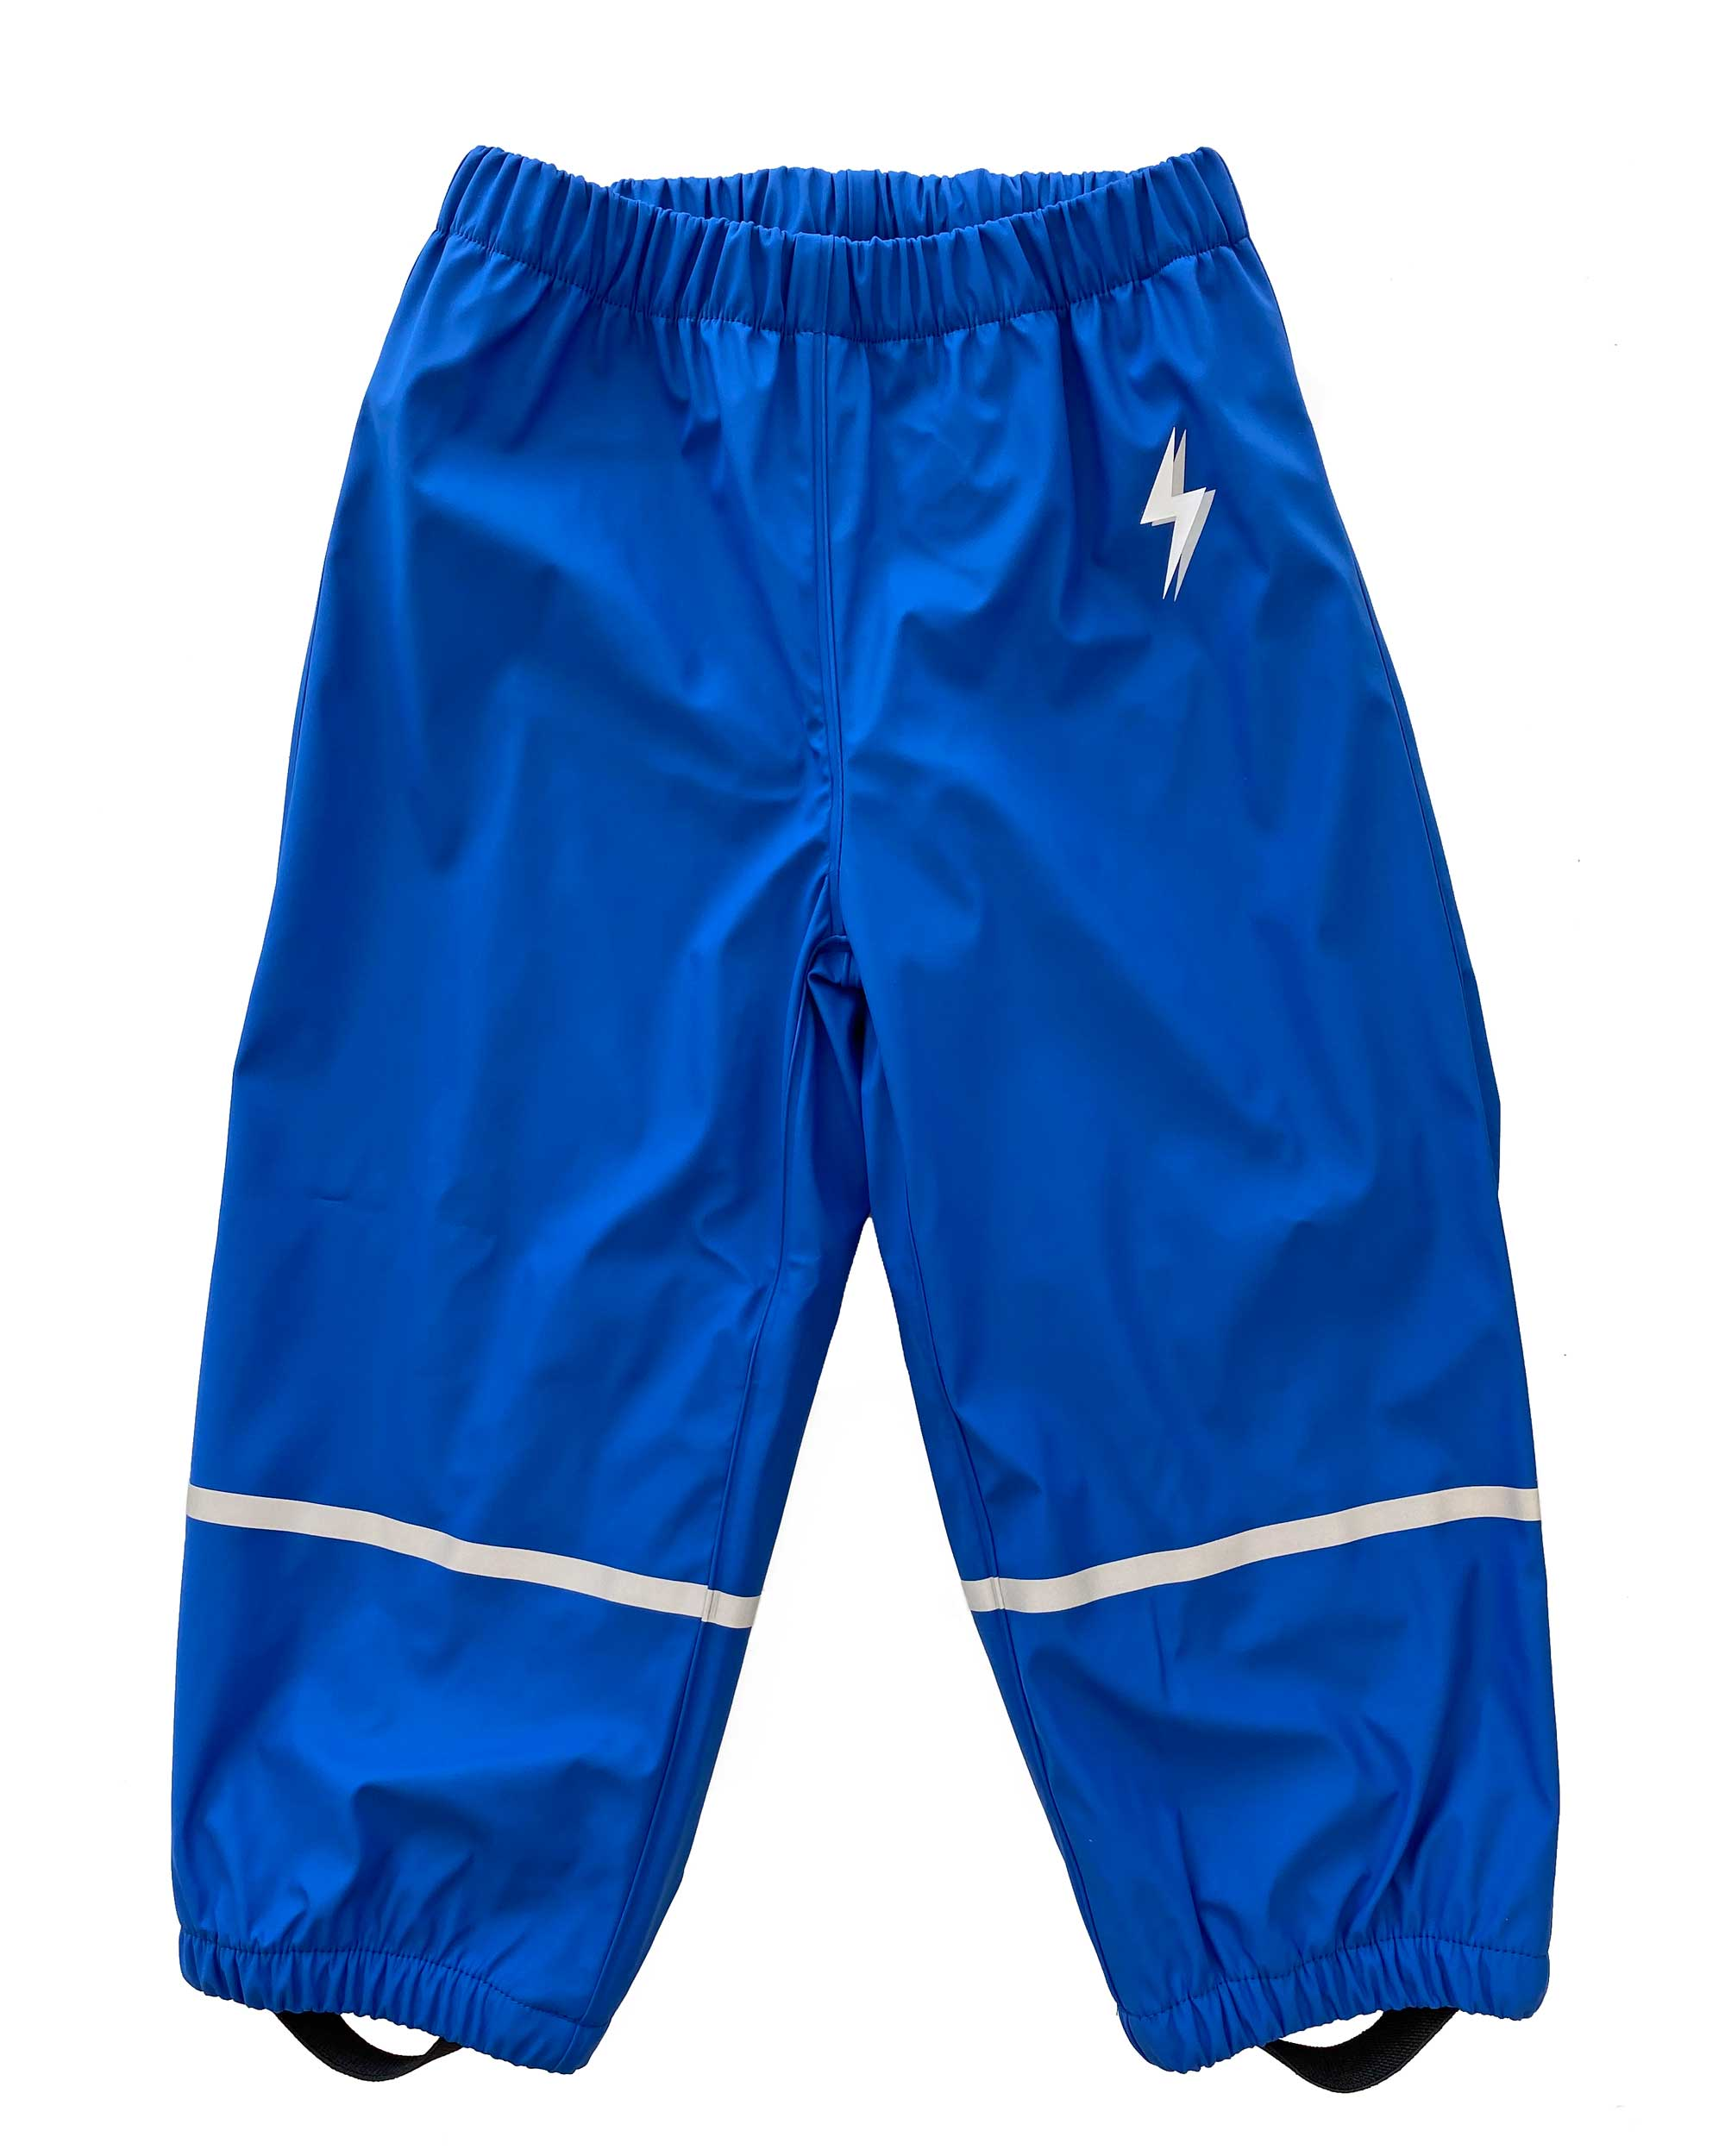 Splasher Blue Rain Pants